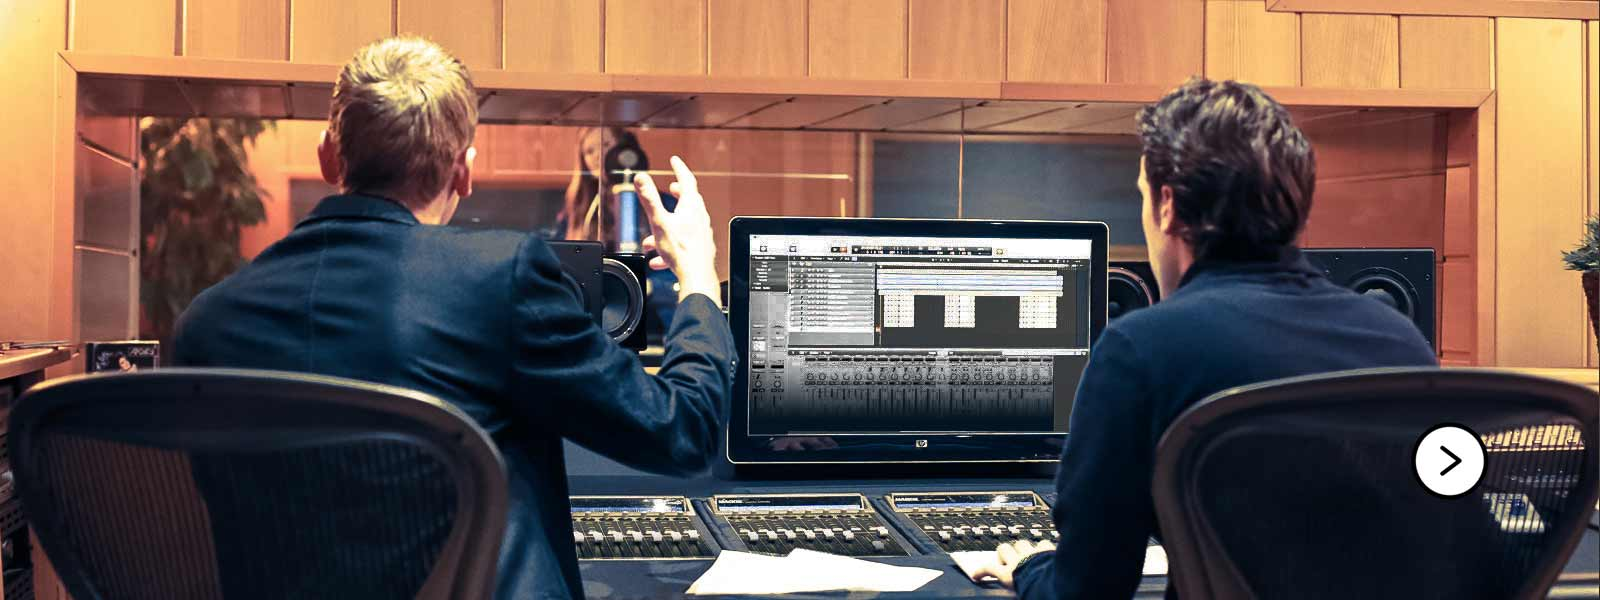 Producers in muziekstudio